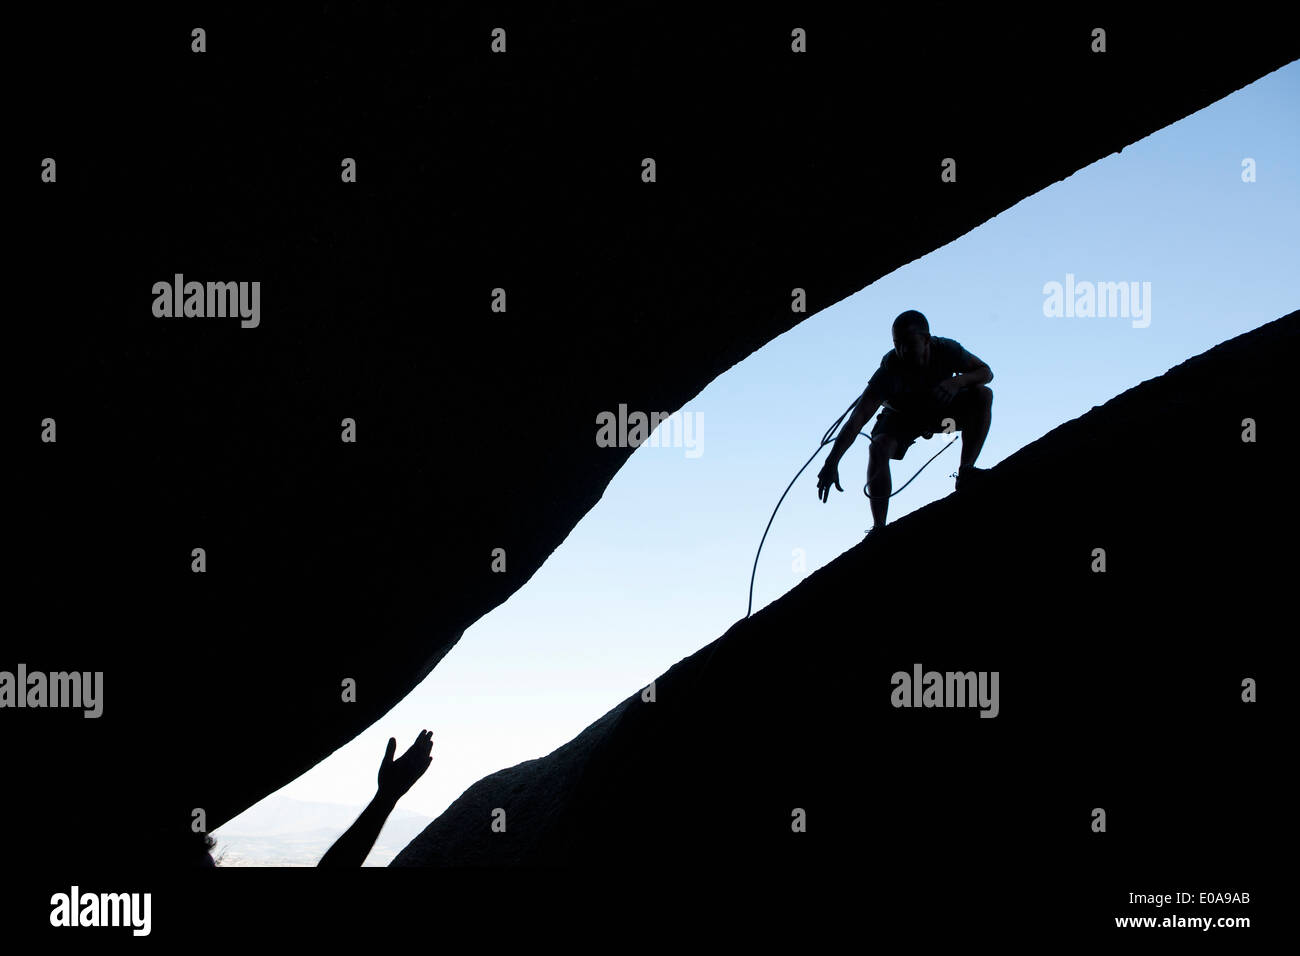 Silhouette of young male climbers reaching out for each other on rock - Stock Image